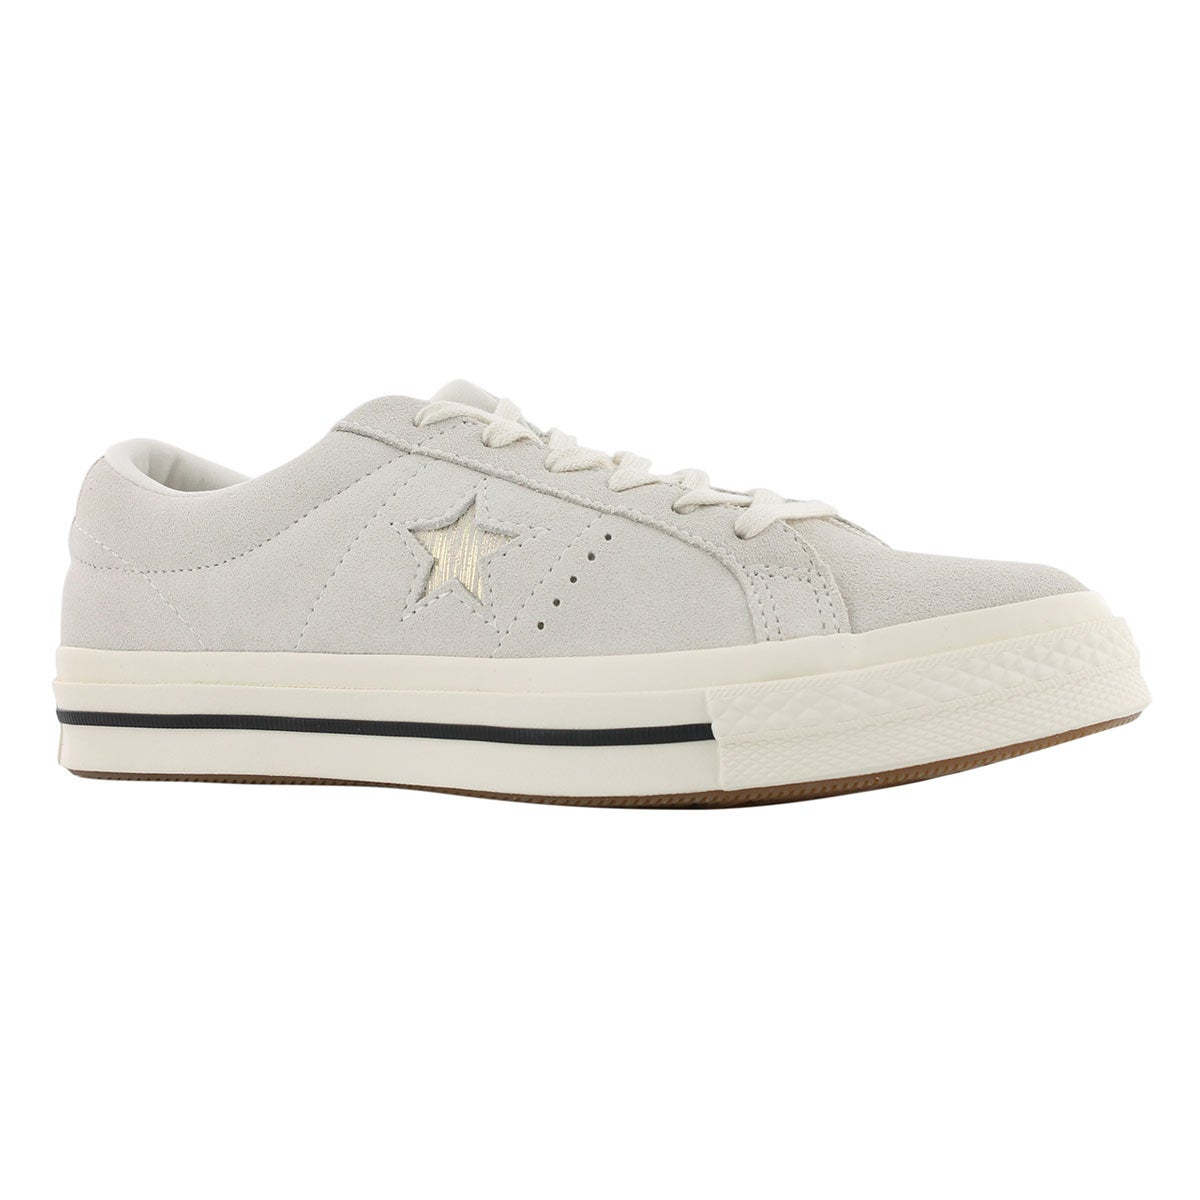 Women's ONE STAR egret/gold sneakers